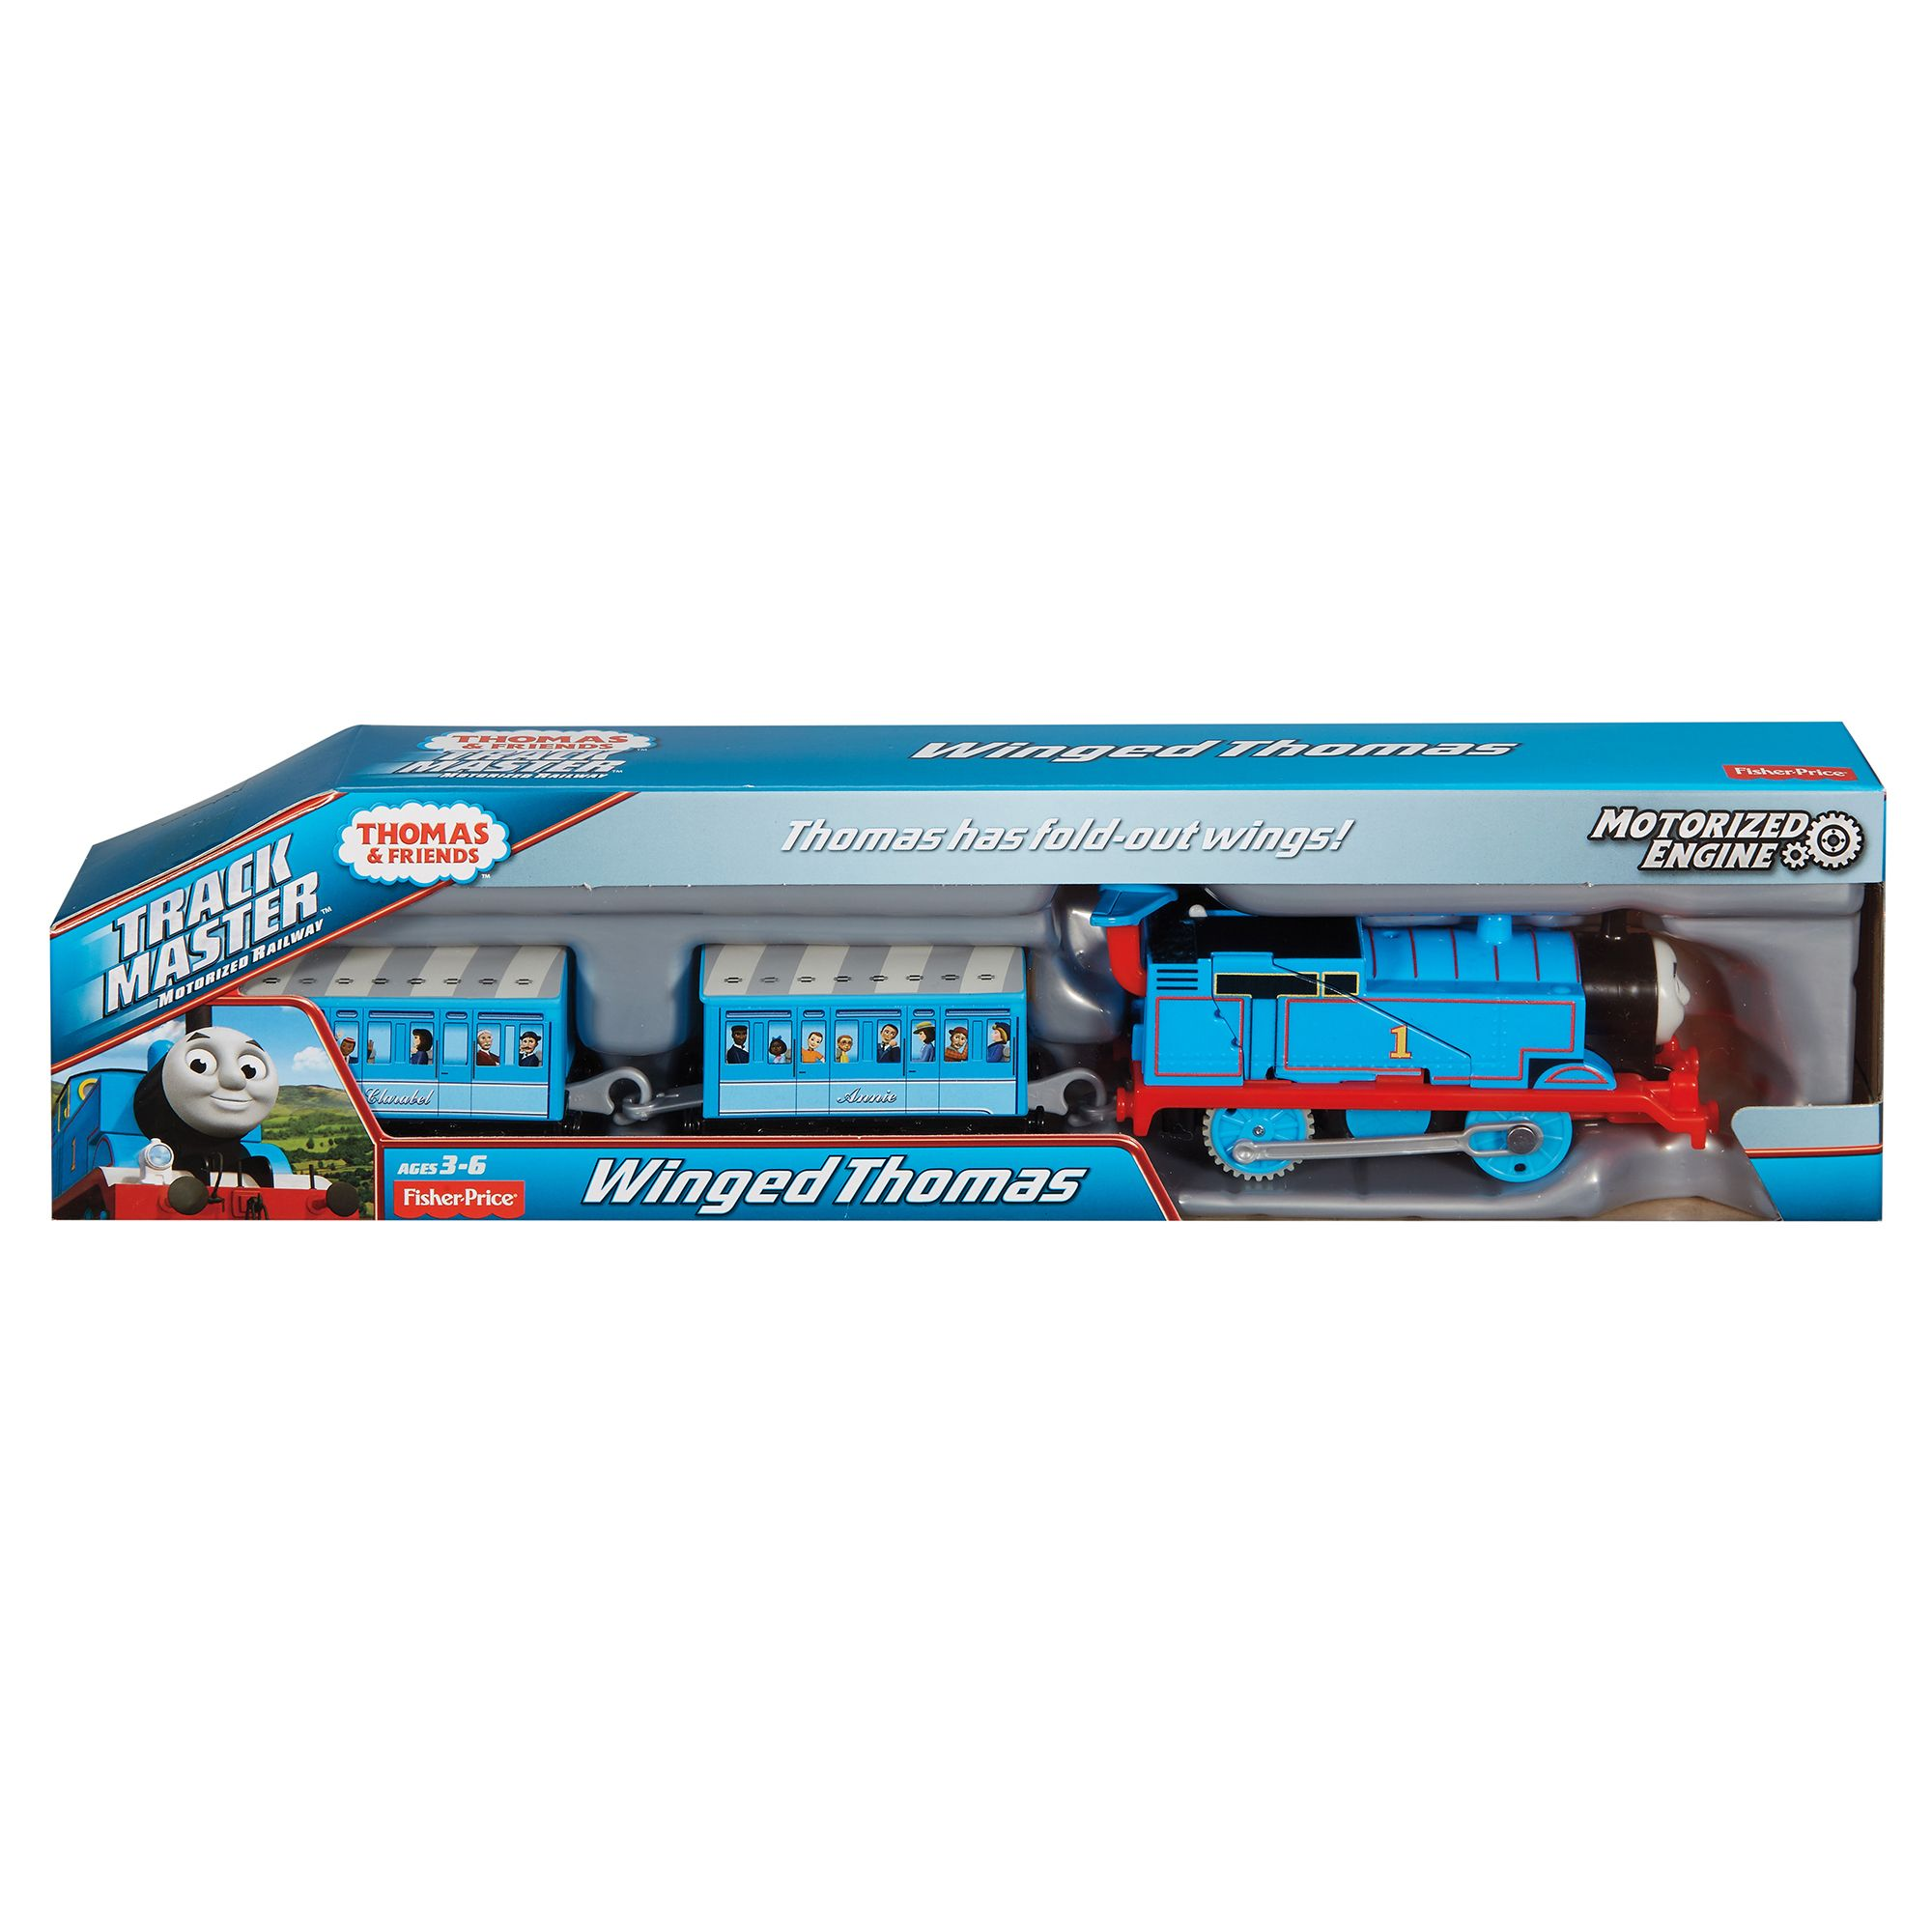 Image of Thomas & Friends Trackmaster Thomas With Wings